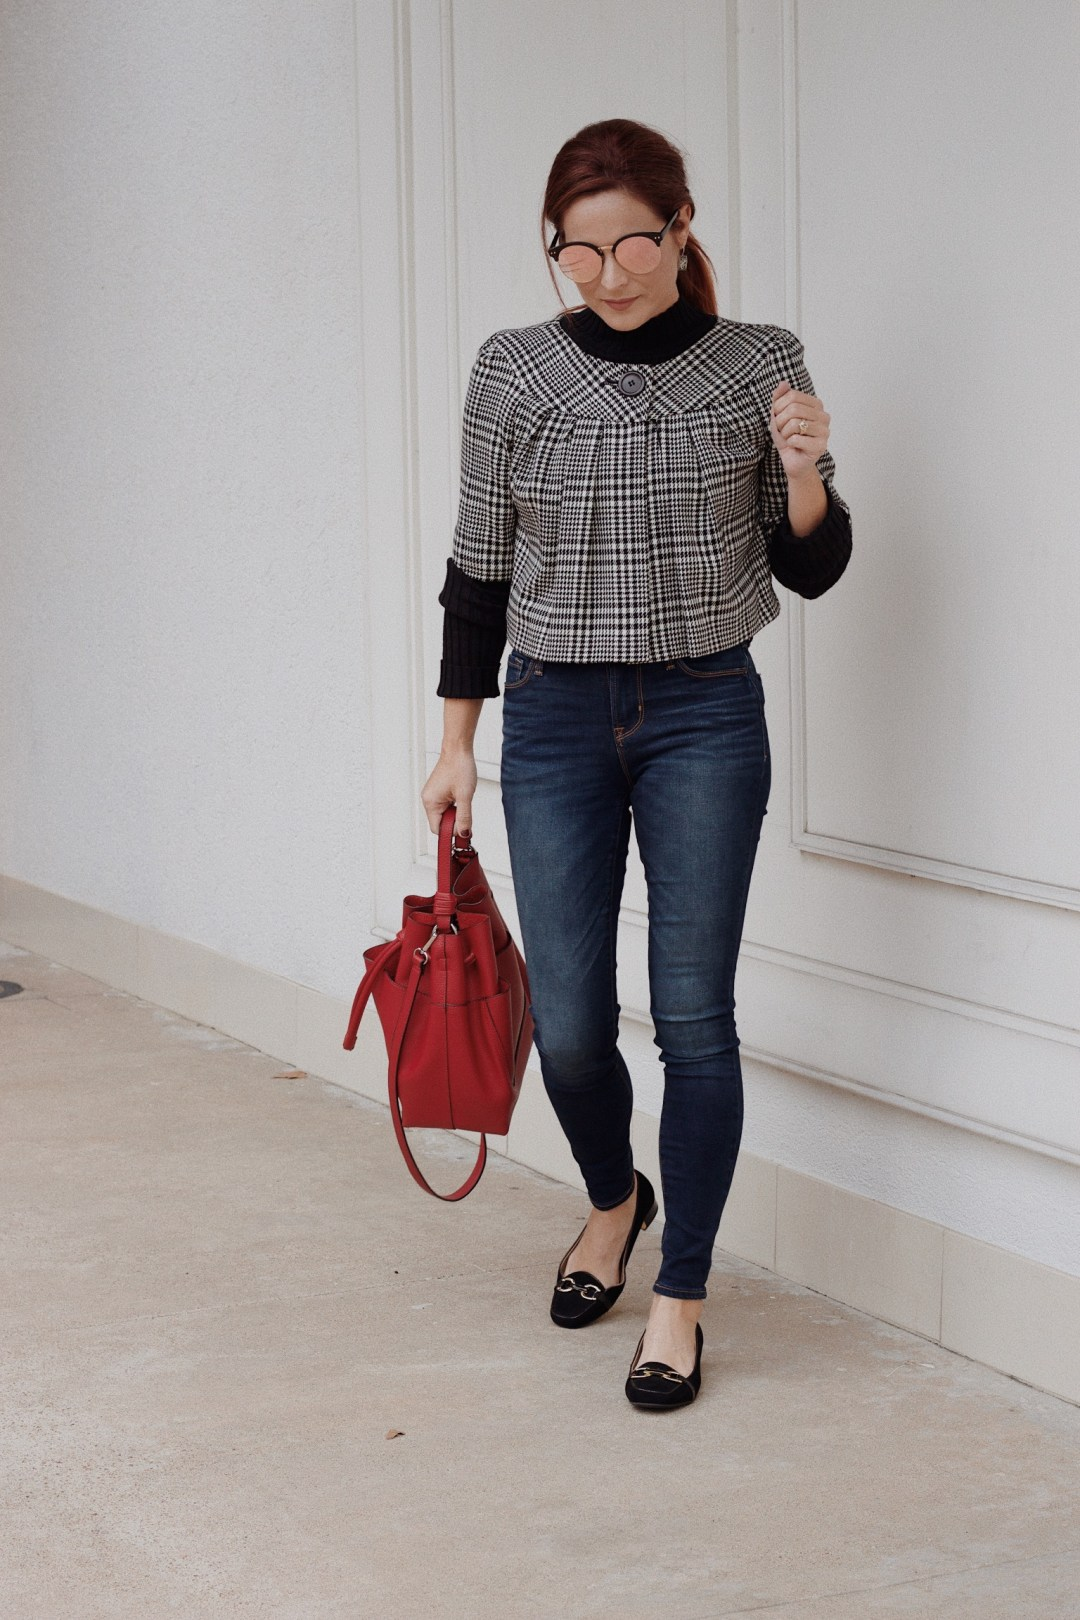 Audrey Hepburn style, chic outfits, loafers with jeans, classic blazers